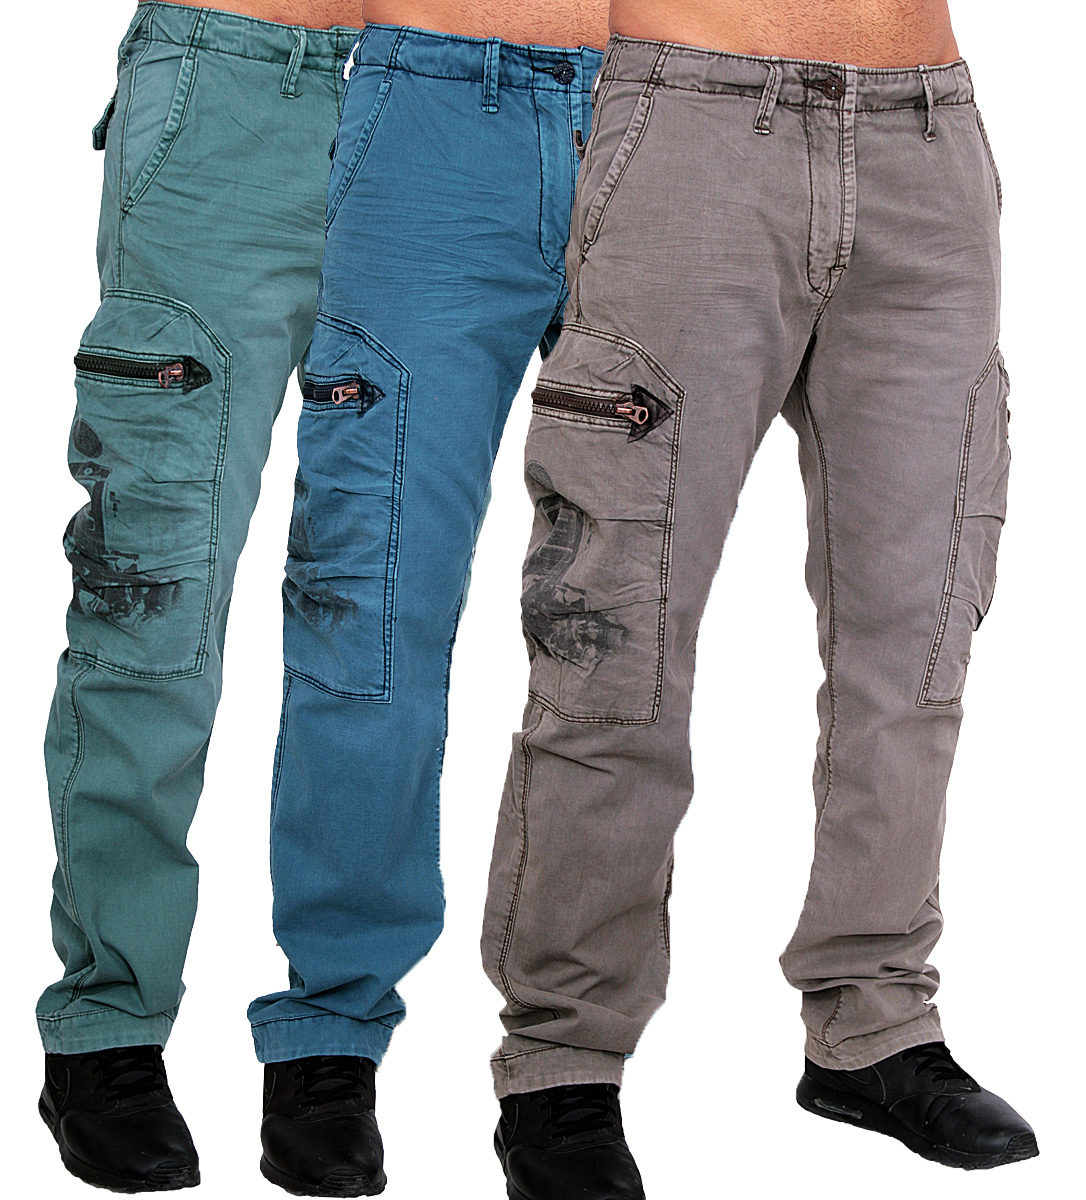 jet lag herren cargo hose freizeit trousers army hose cargohose arbeits hose ebay. Black Bedroom Furniture Sets. Home Design Ideas